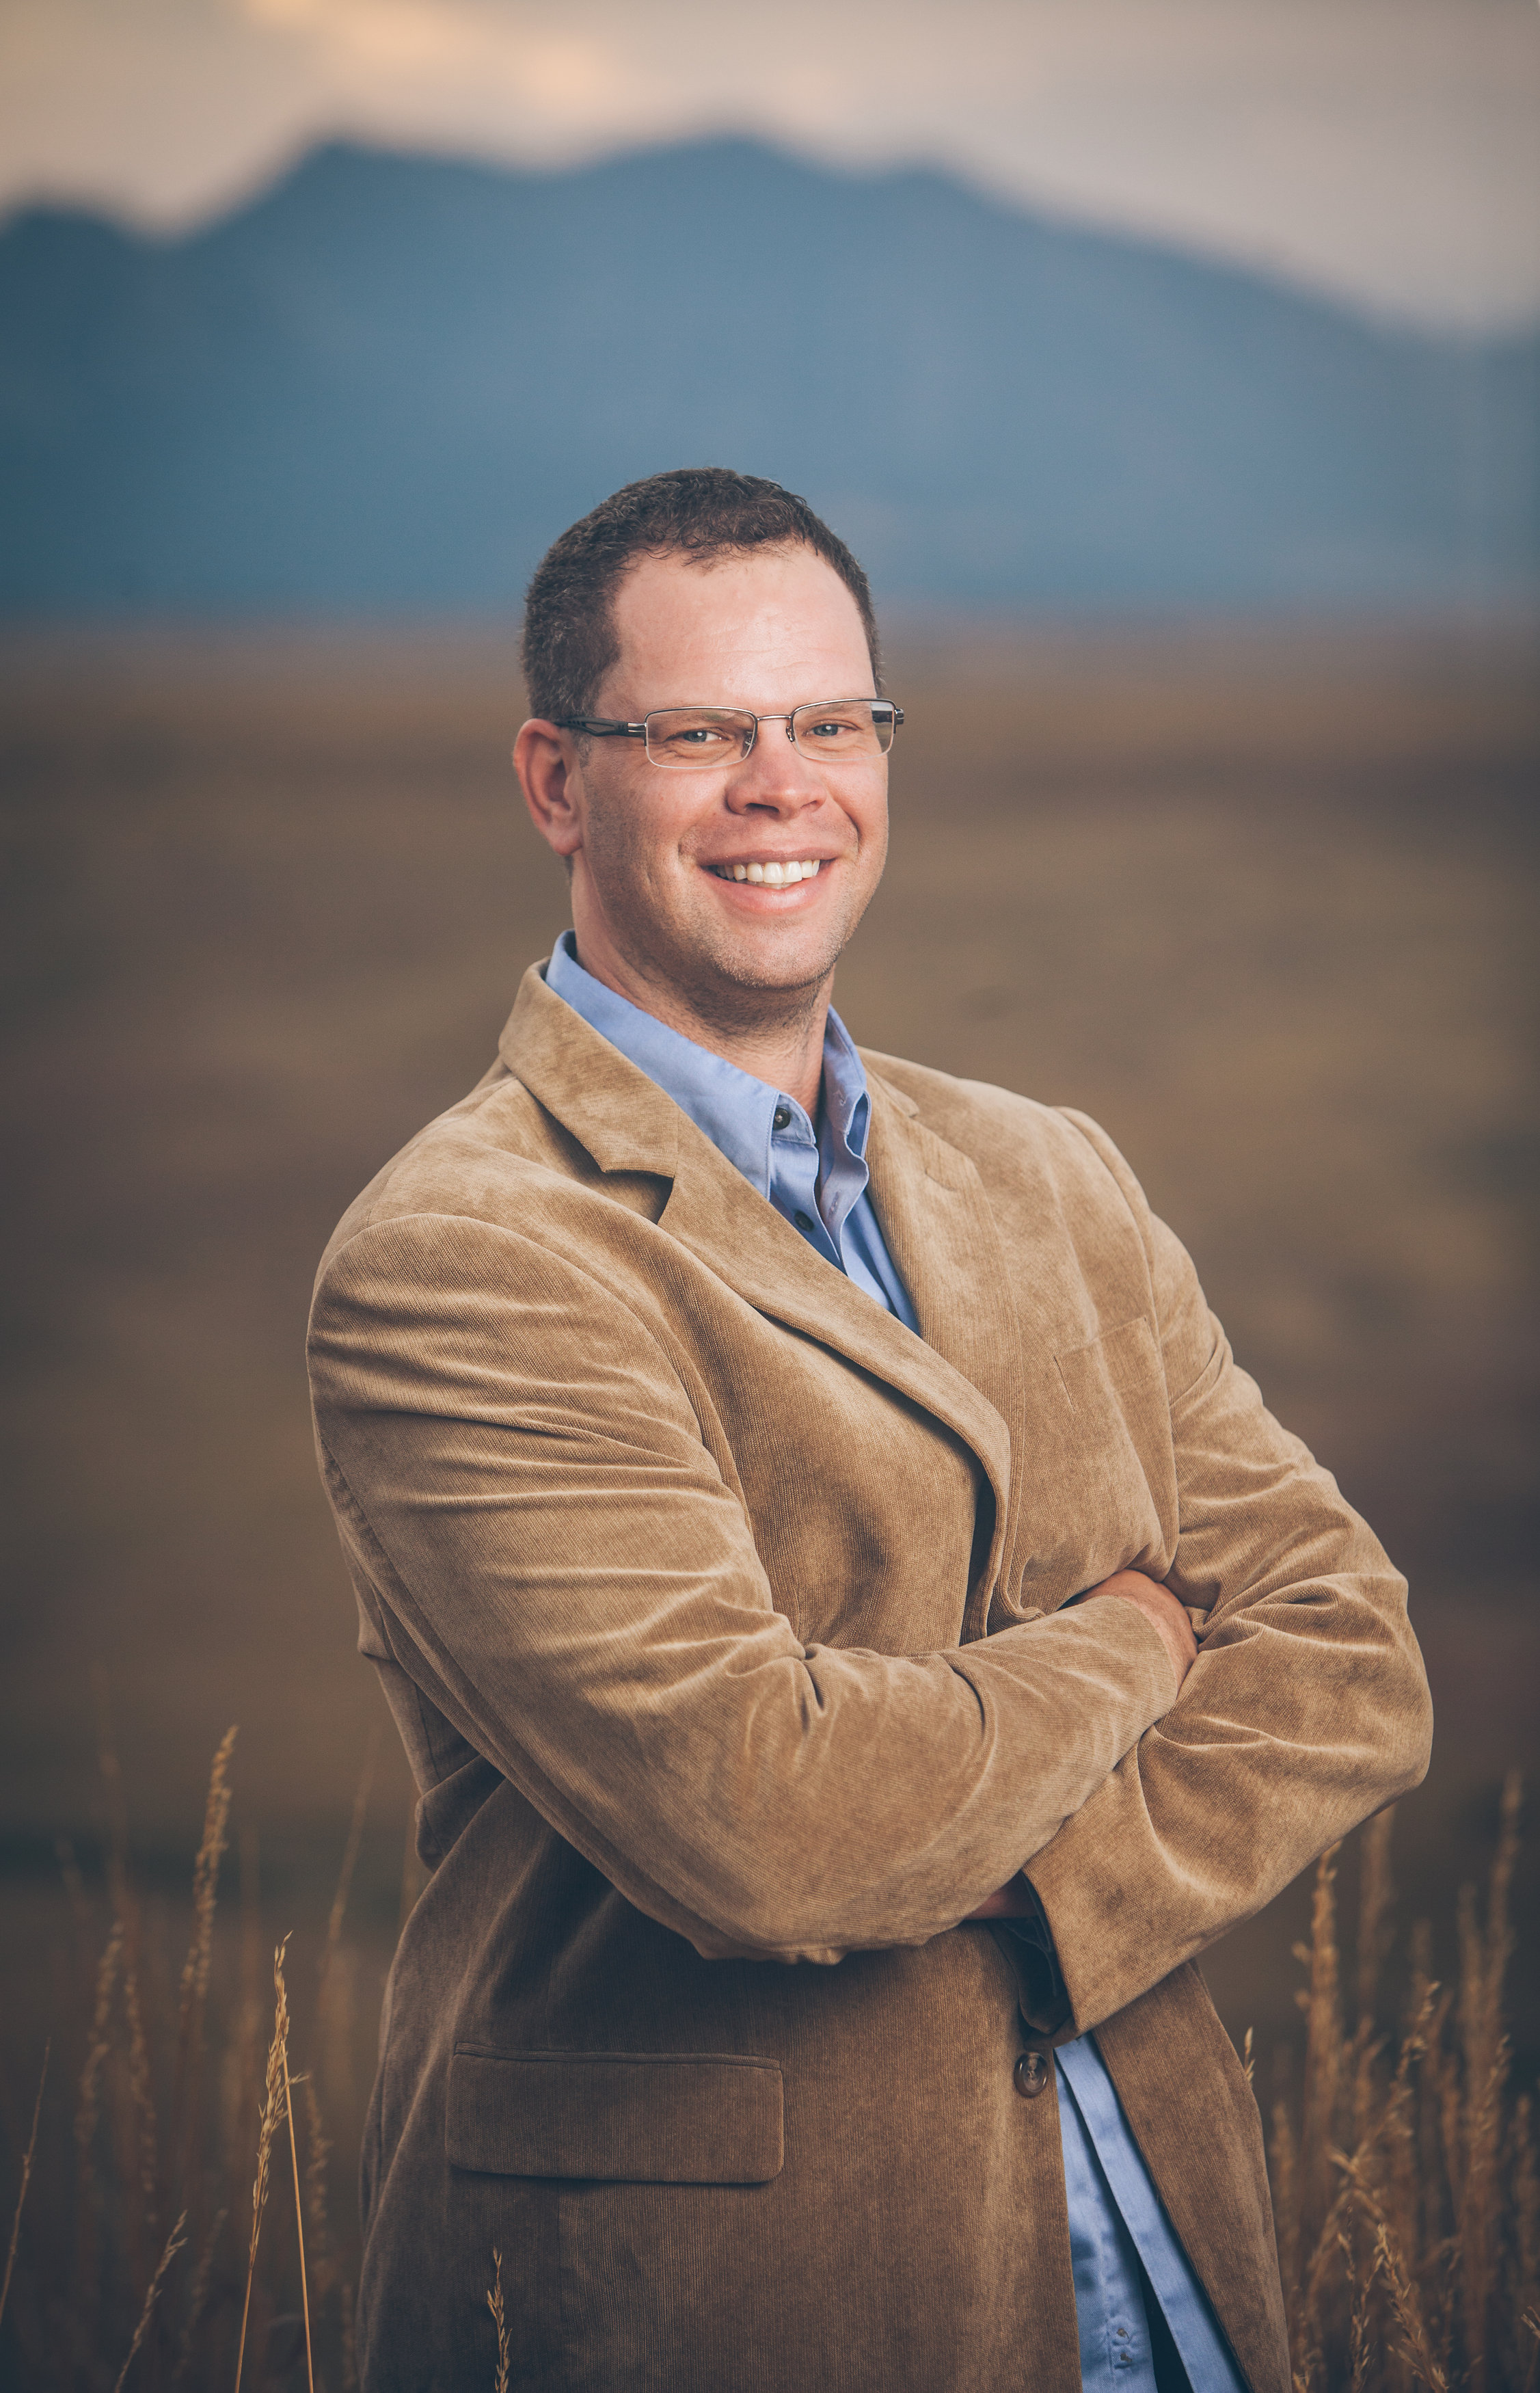 """Owner - Somerset McCarty - Somerset is a Boulder, Colorado native. He graduated from the University of Colorado with a bachelor's degree in communication.Somerset is known by his clients and close friends for being good with details and for his ability to listen and communicate well and effectively. His family genes include a surgeon (his brother) and a dentist (his dad), so he is no stranger to working meticulously with his hands. For Somerset, lighting is more than hanging lights, it is an art form that he has fine-tuned over 9 years and he is very passionate about it. It is important to Somerset to only hire people with like-minded enthusiasm and similar detail-oriented capabilities.Another interesting fact about Somerset is that he has been named, a """"Miracle Man"""